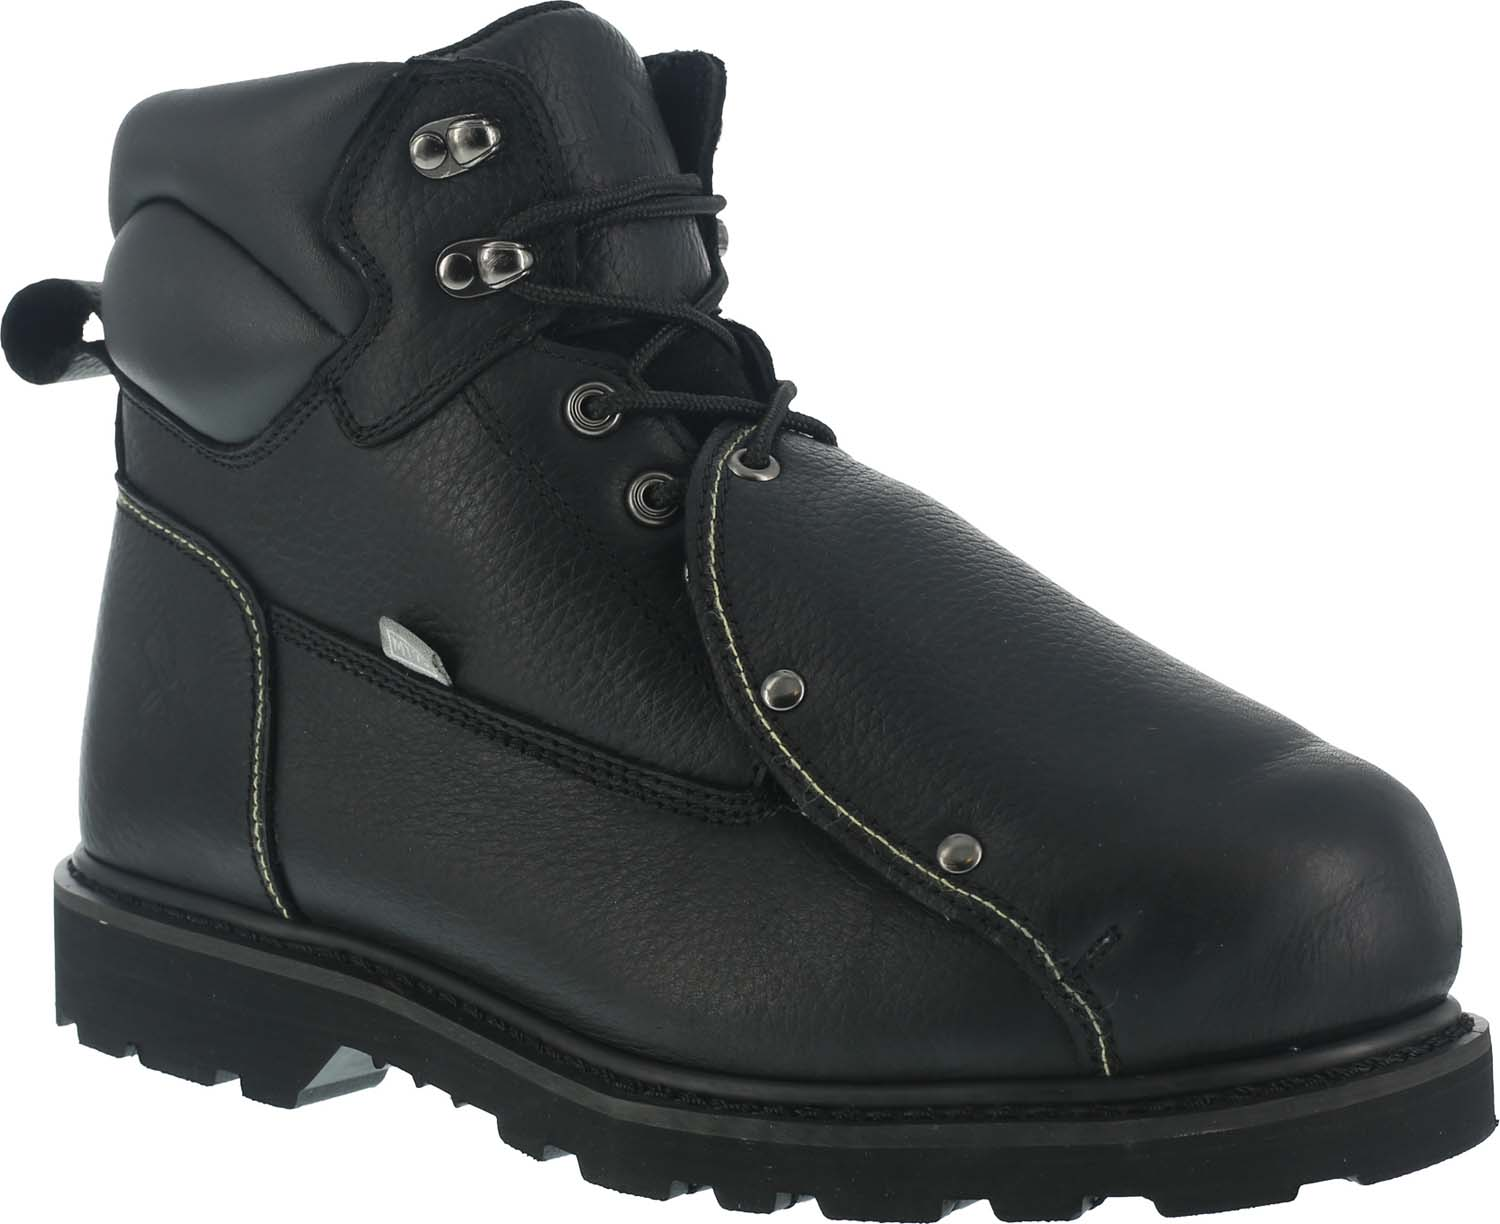 Work Boots Safety Shoes Steel Toe Waterproof Safety Footwear Bates Boots Ansi Astm Safgard